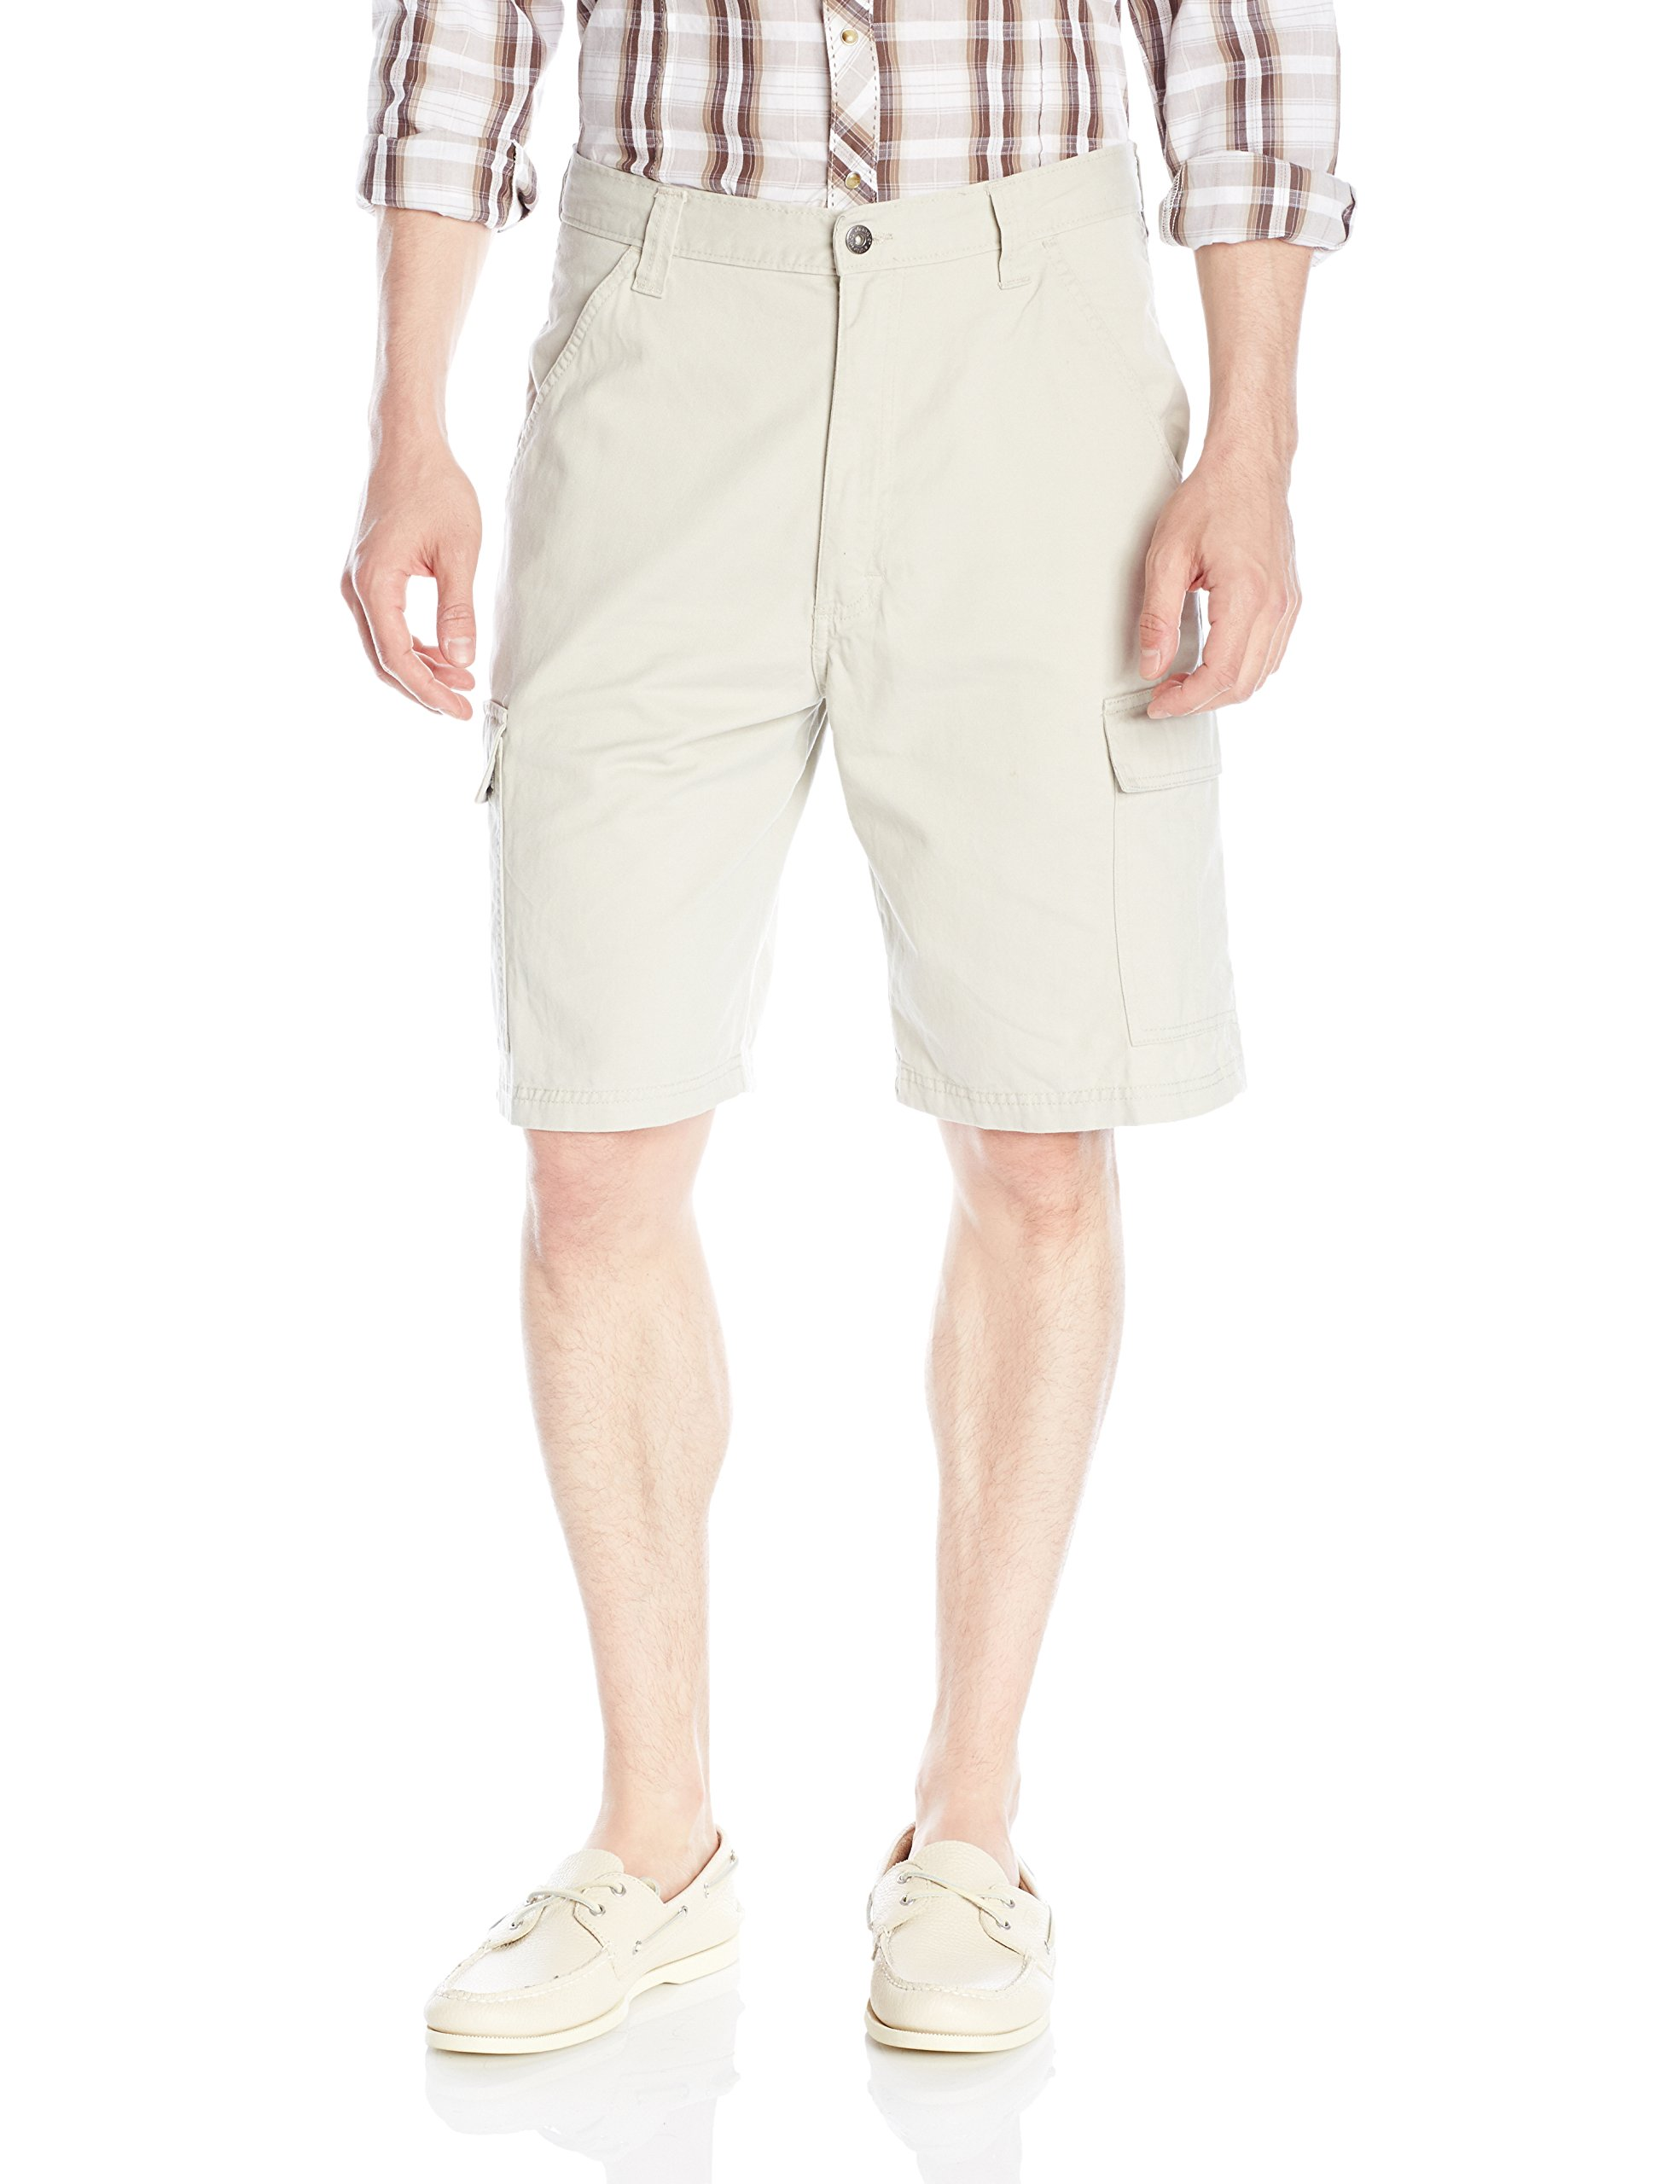 Wrangler Men's Authentics Classic Twill Cargo Short, Dark Putty, 36